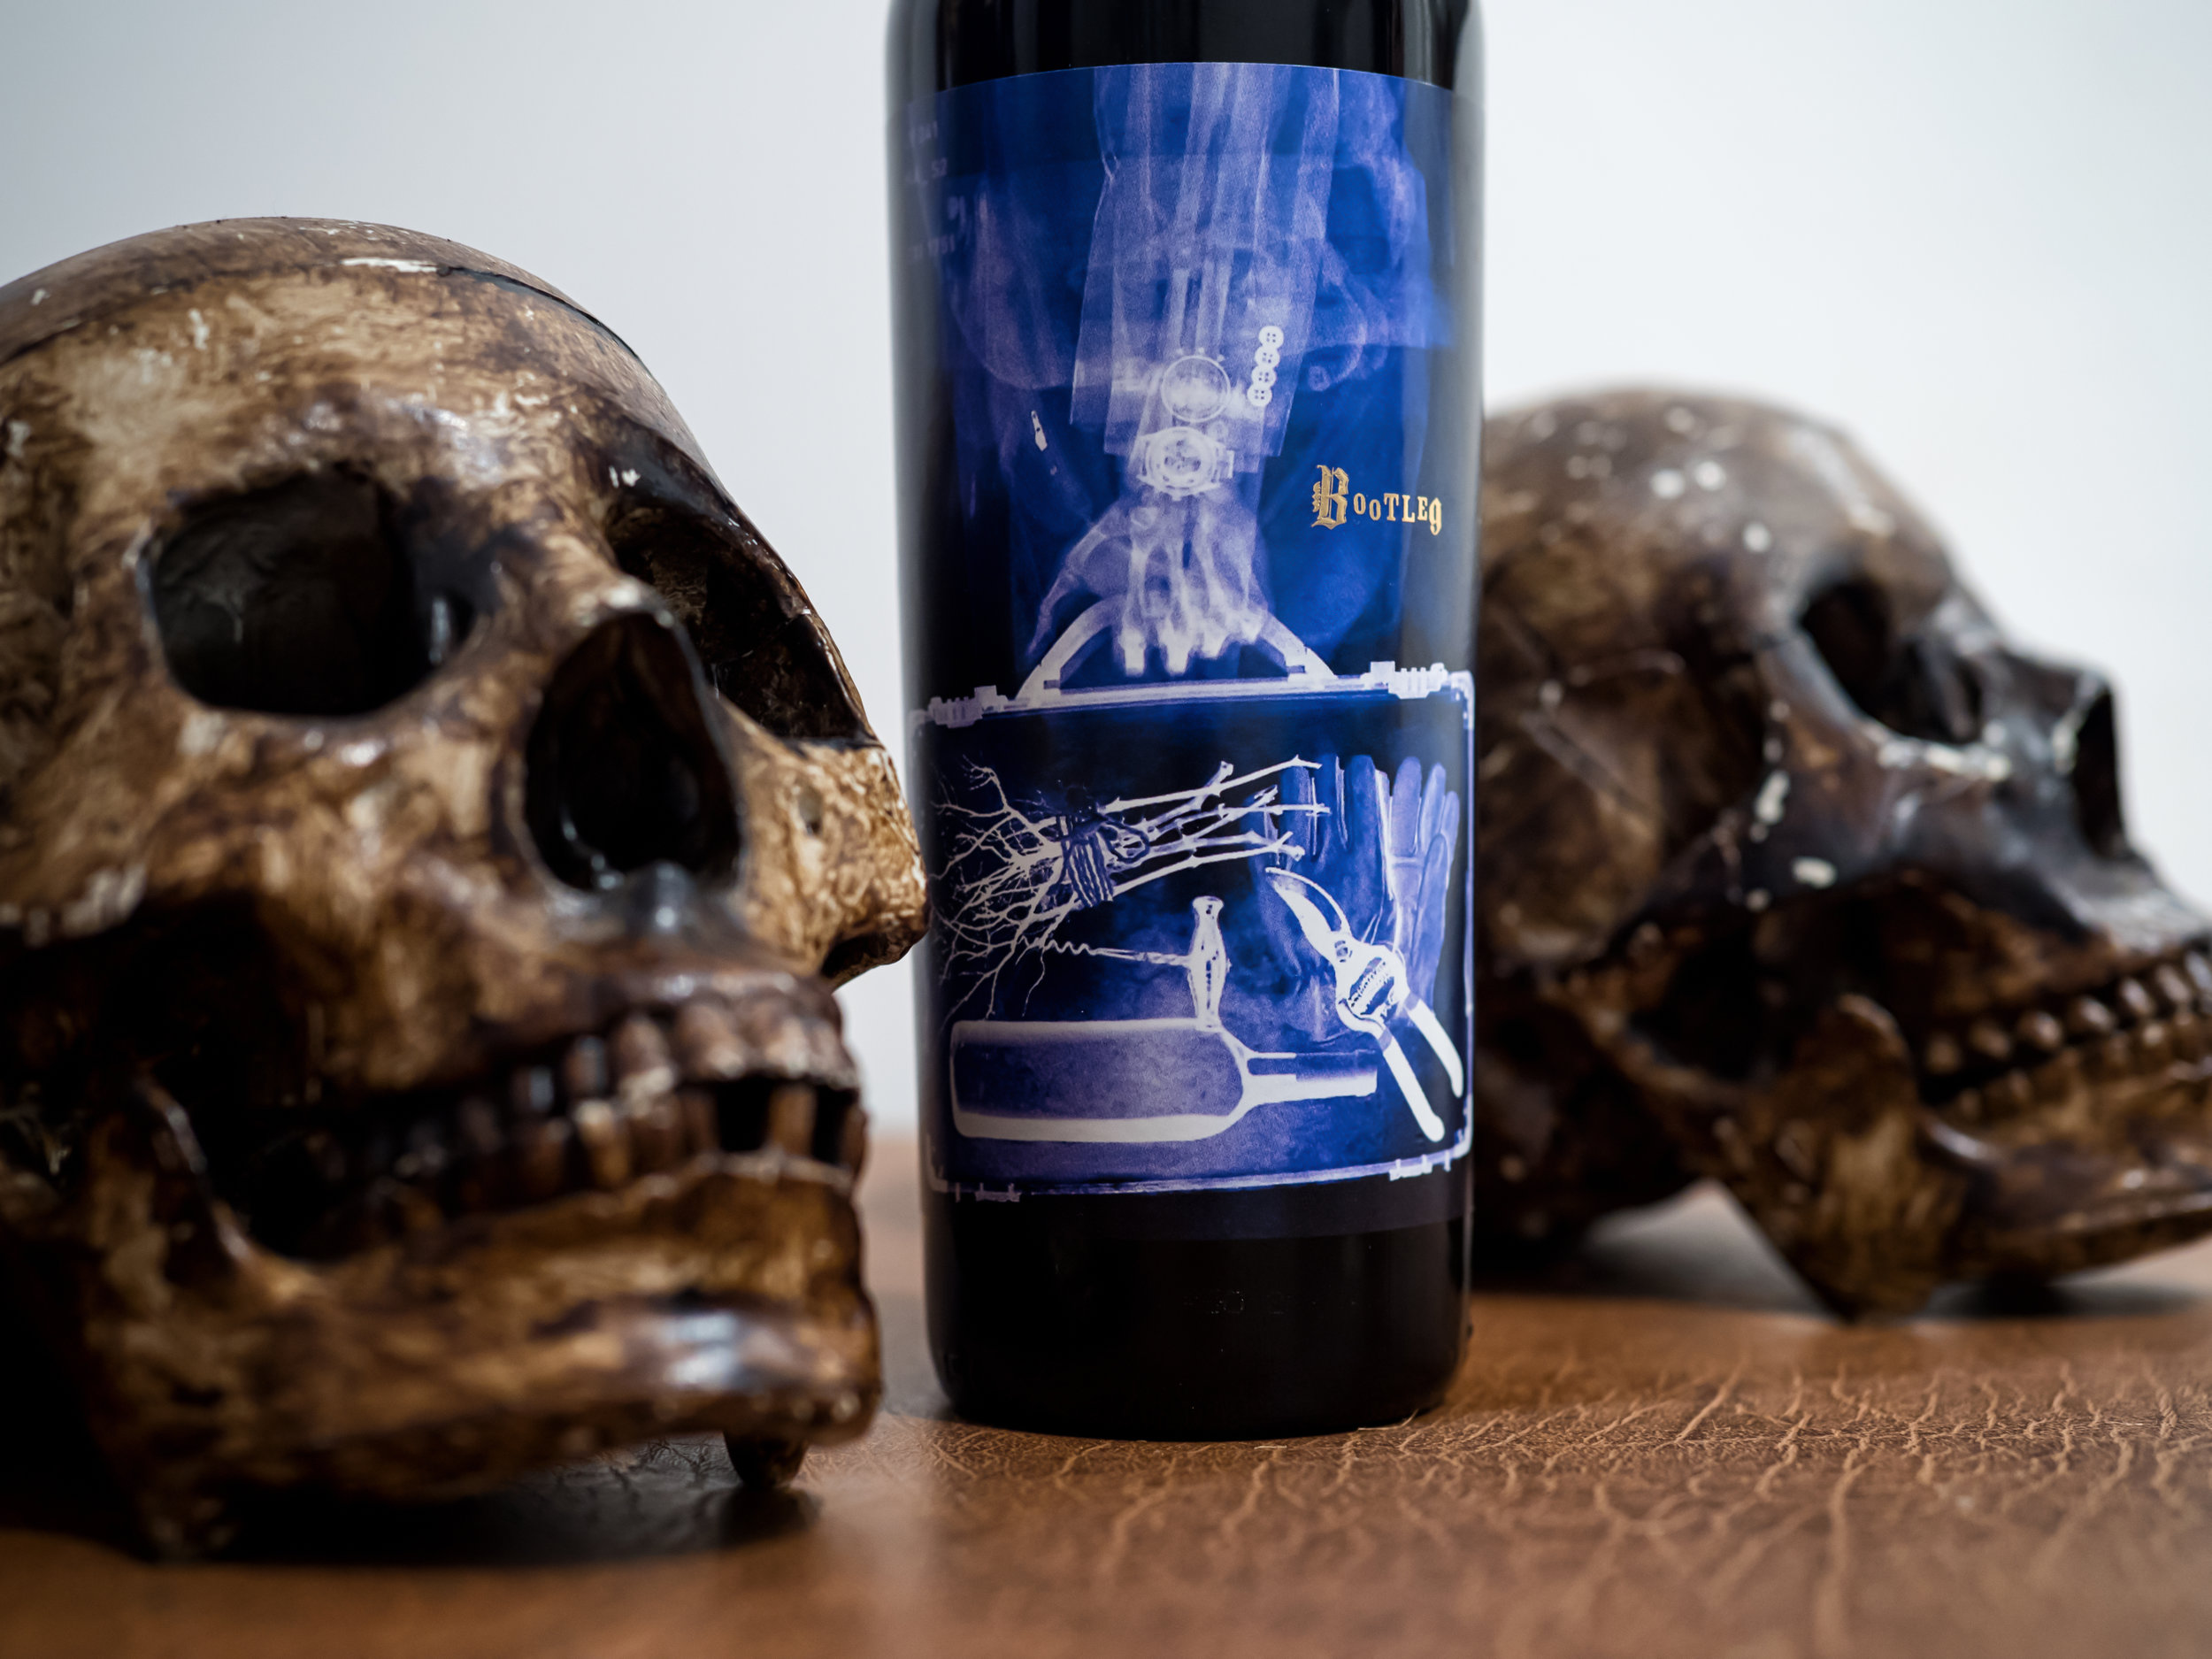 Musings by the Glass - Spooky Wines with Jorge Garcia - Spooky Wines Lineup - 2013 Bootleg Red Blend Napa California